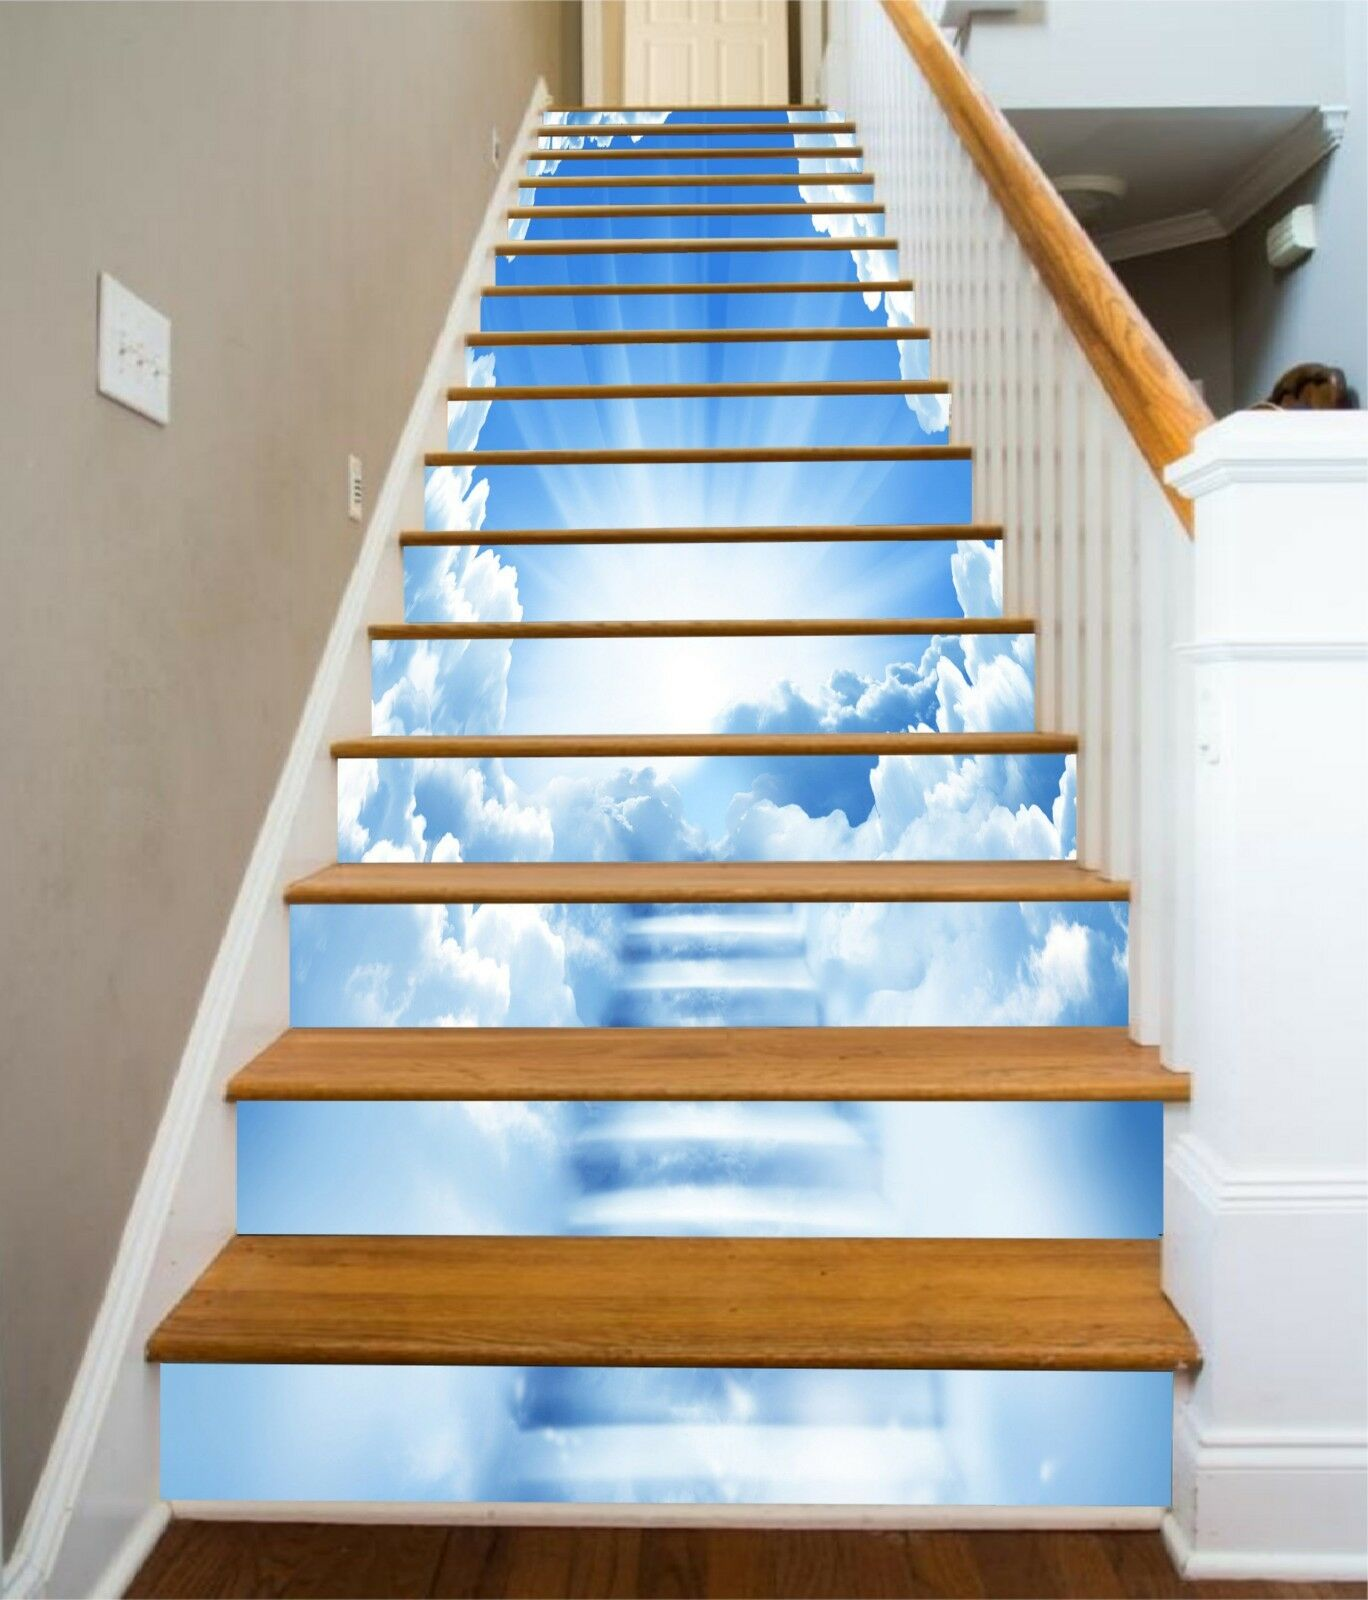 3D Sky Sunlight Stair Risers Decoration Photo Mural Vinyl Decal Wallpaper US